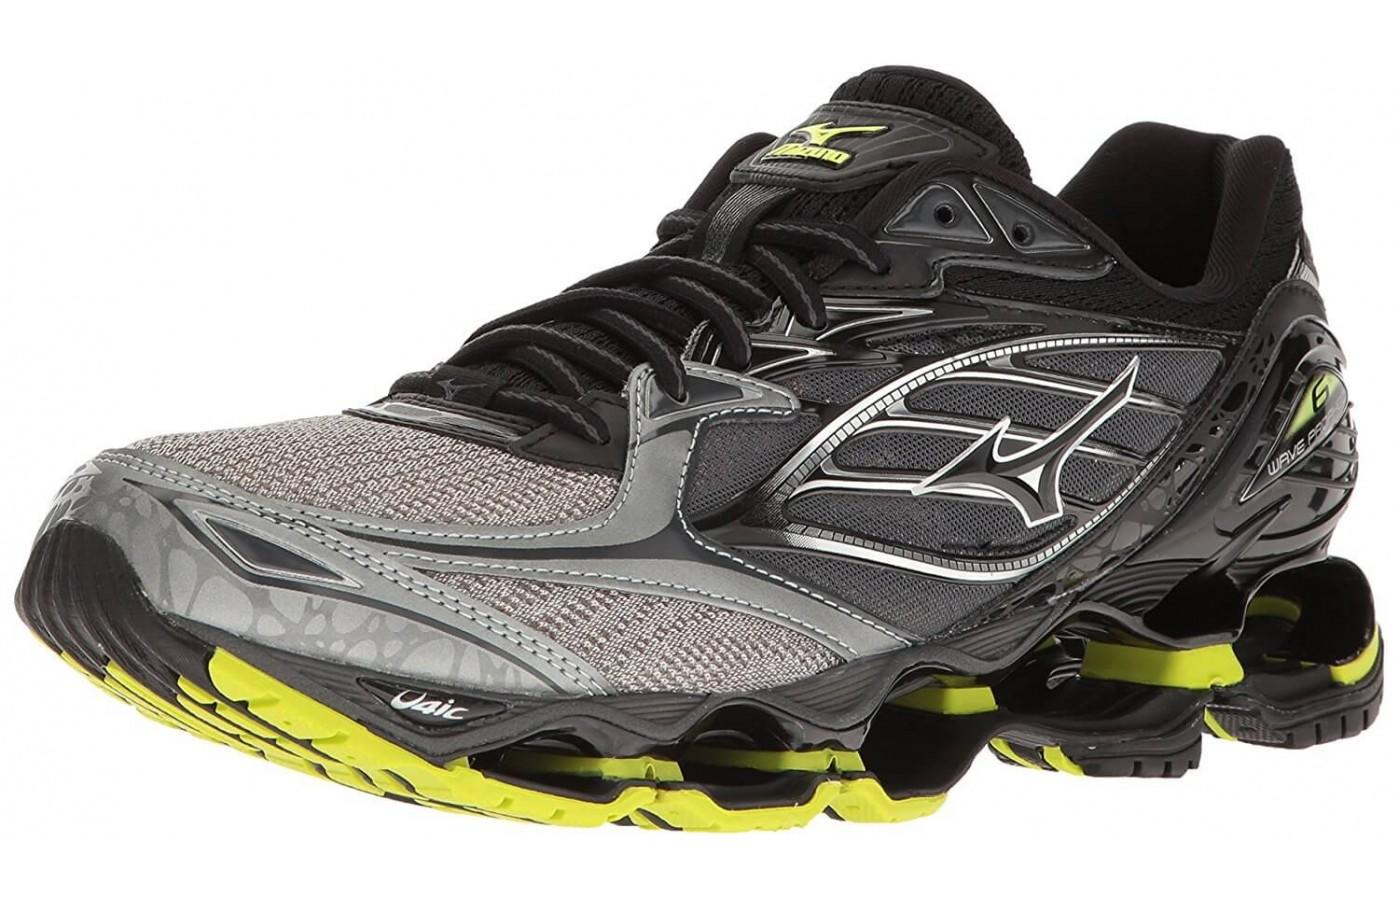 Runners love the unique style and design of the Mizuno Wave Prophecy 6 Nova